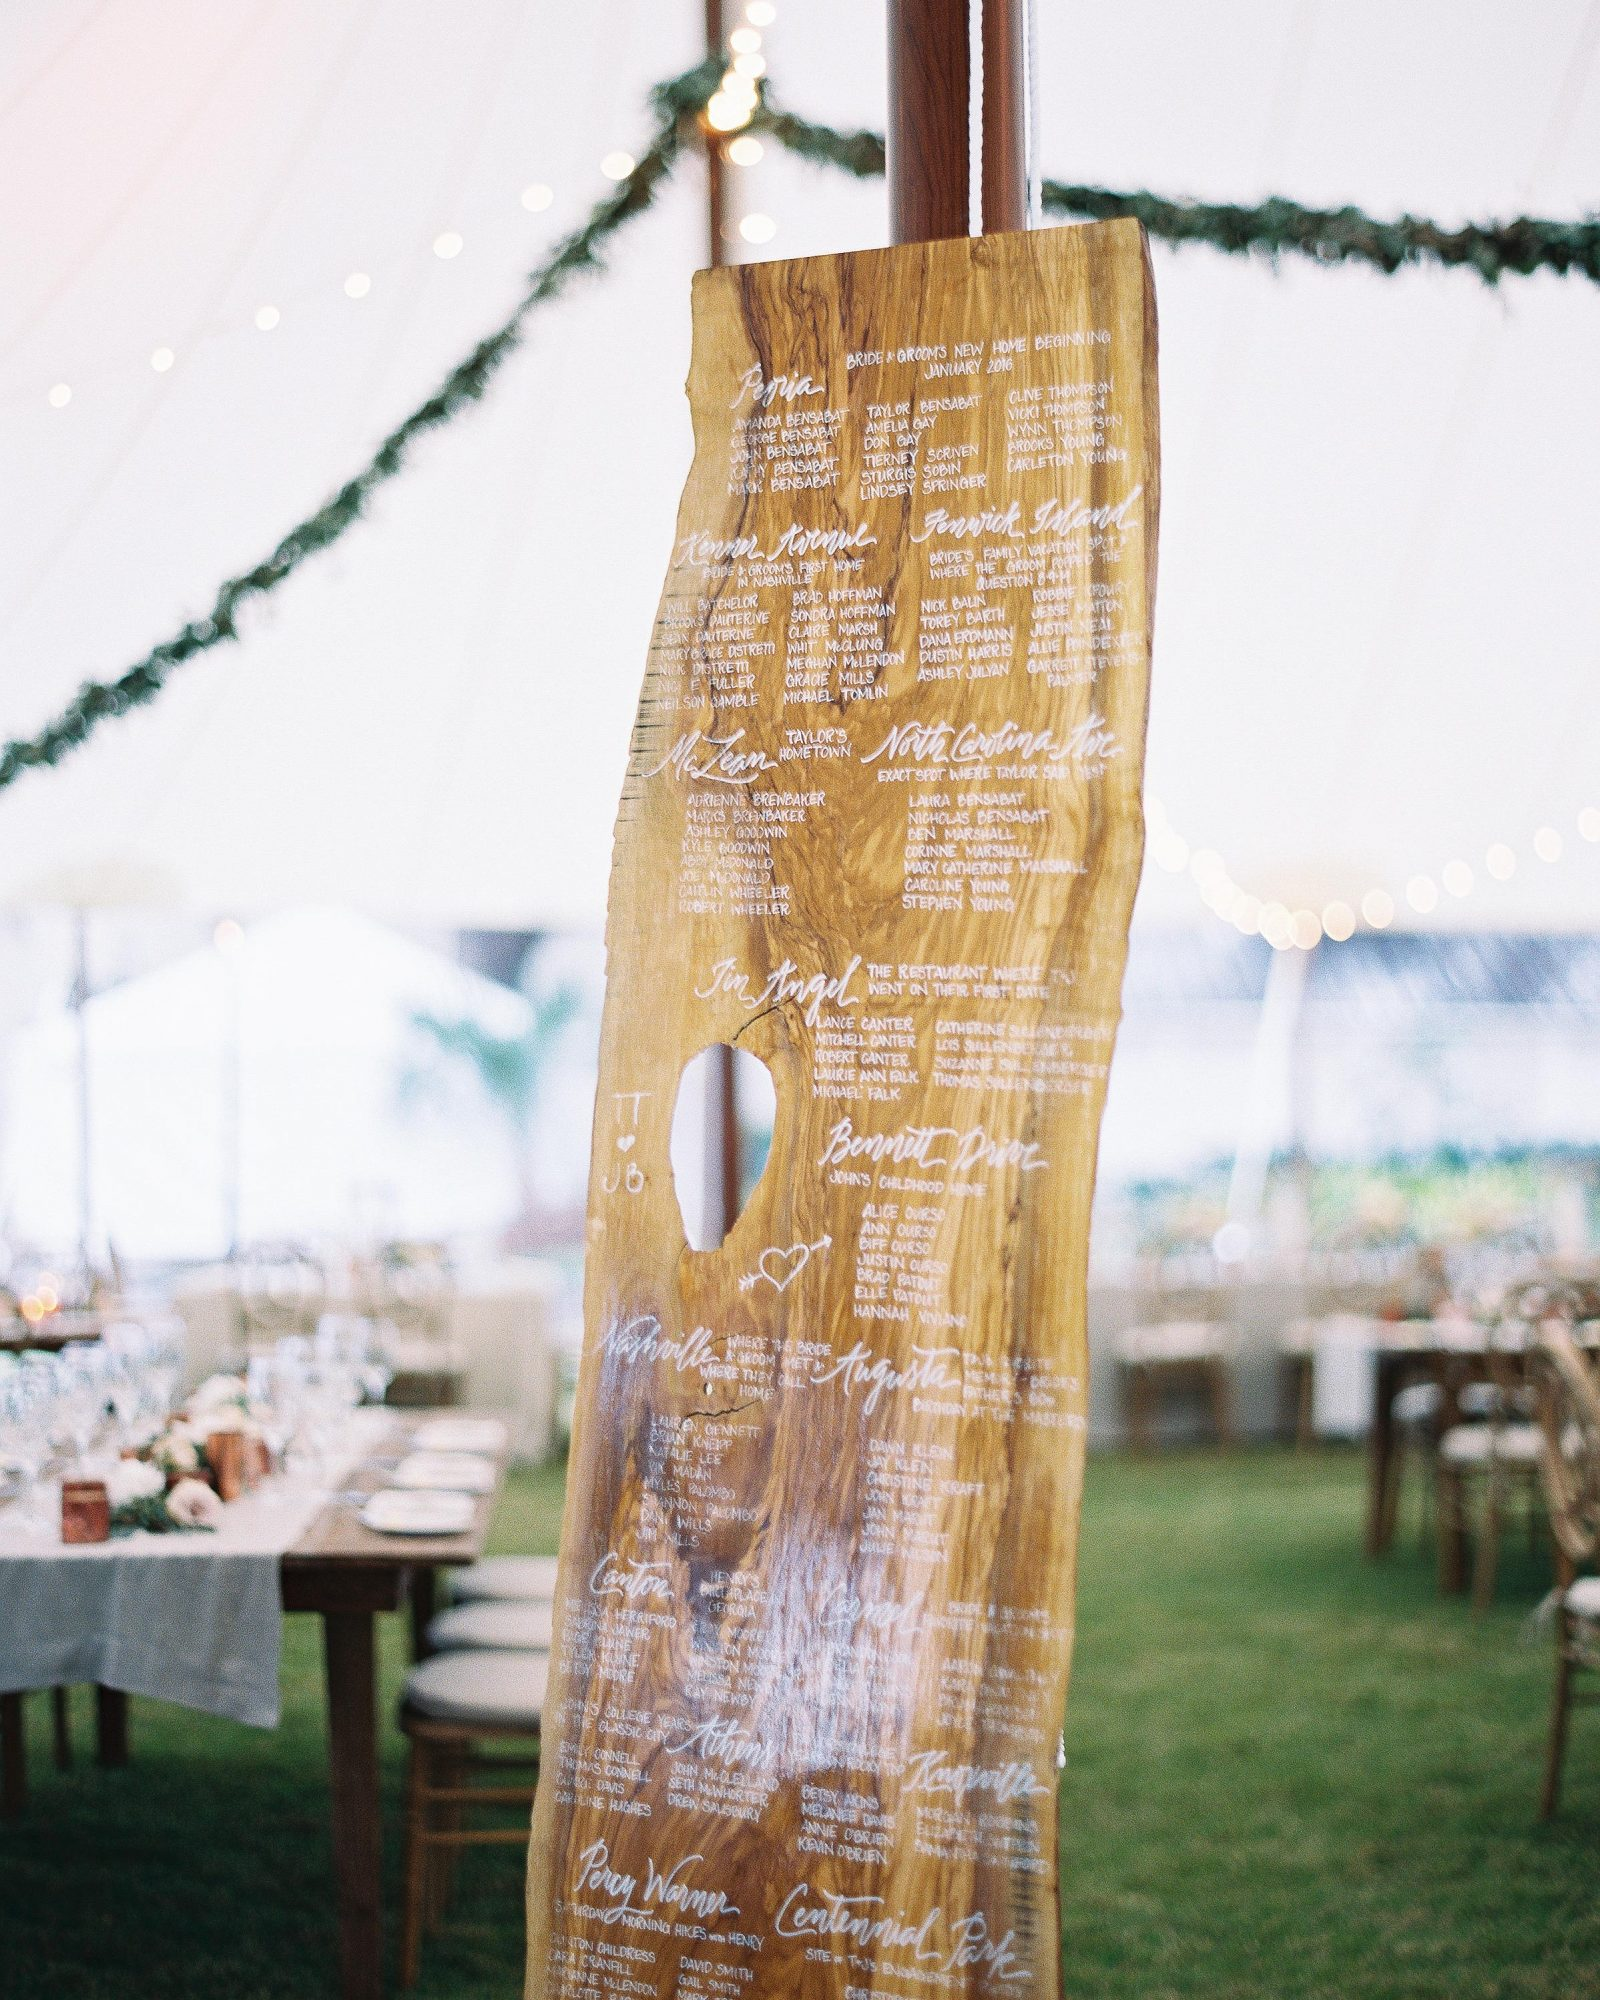 taylor-john-wedding-menu-wood-66-s113035-0616.jpg